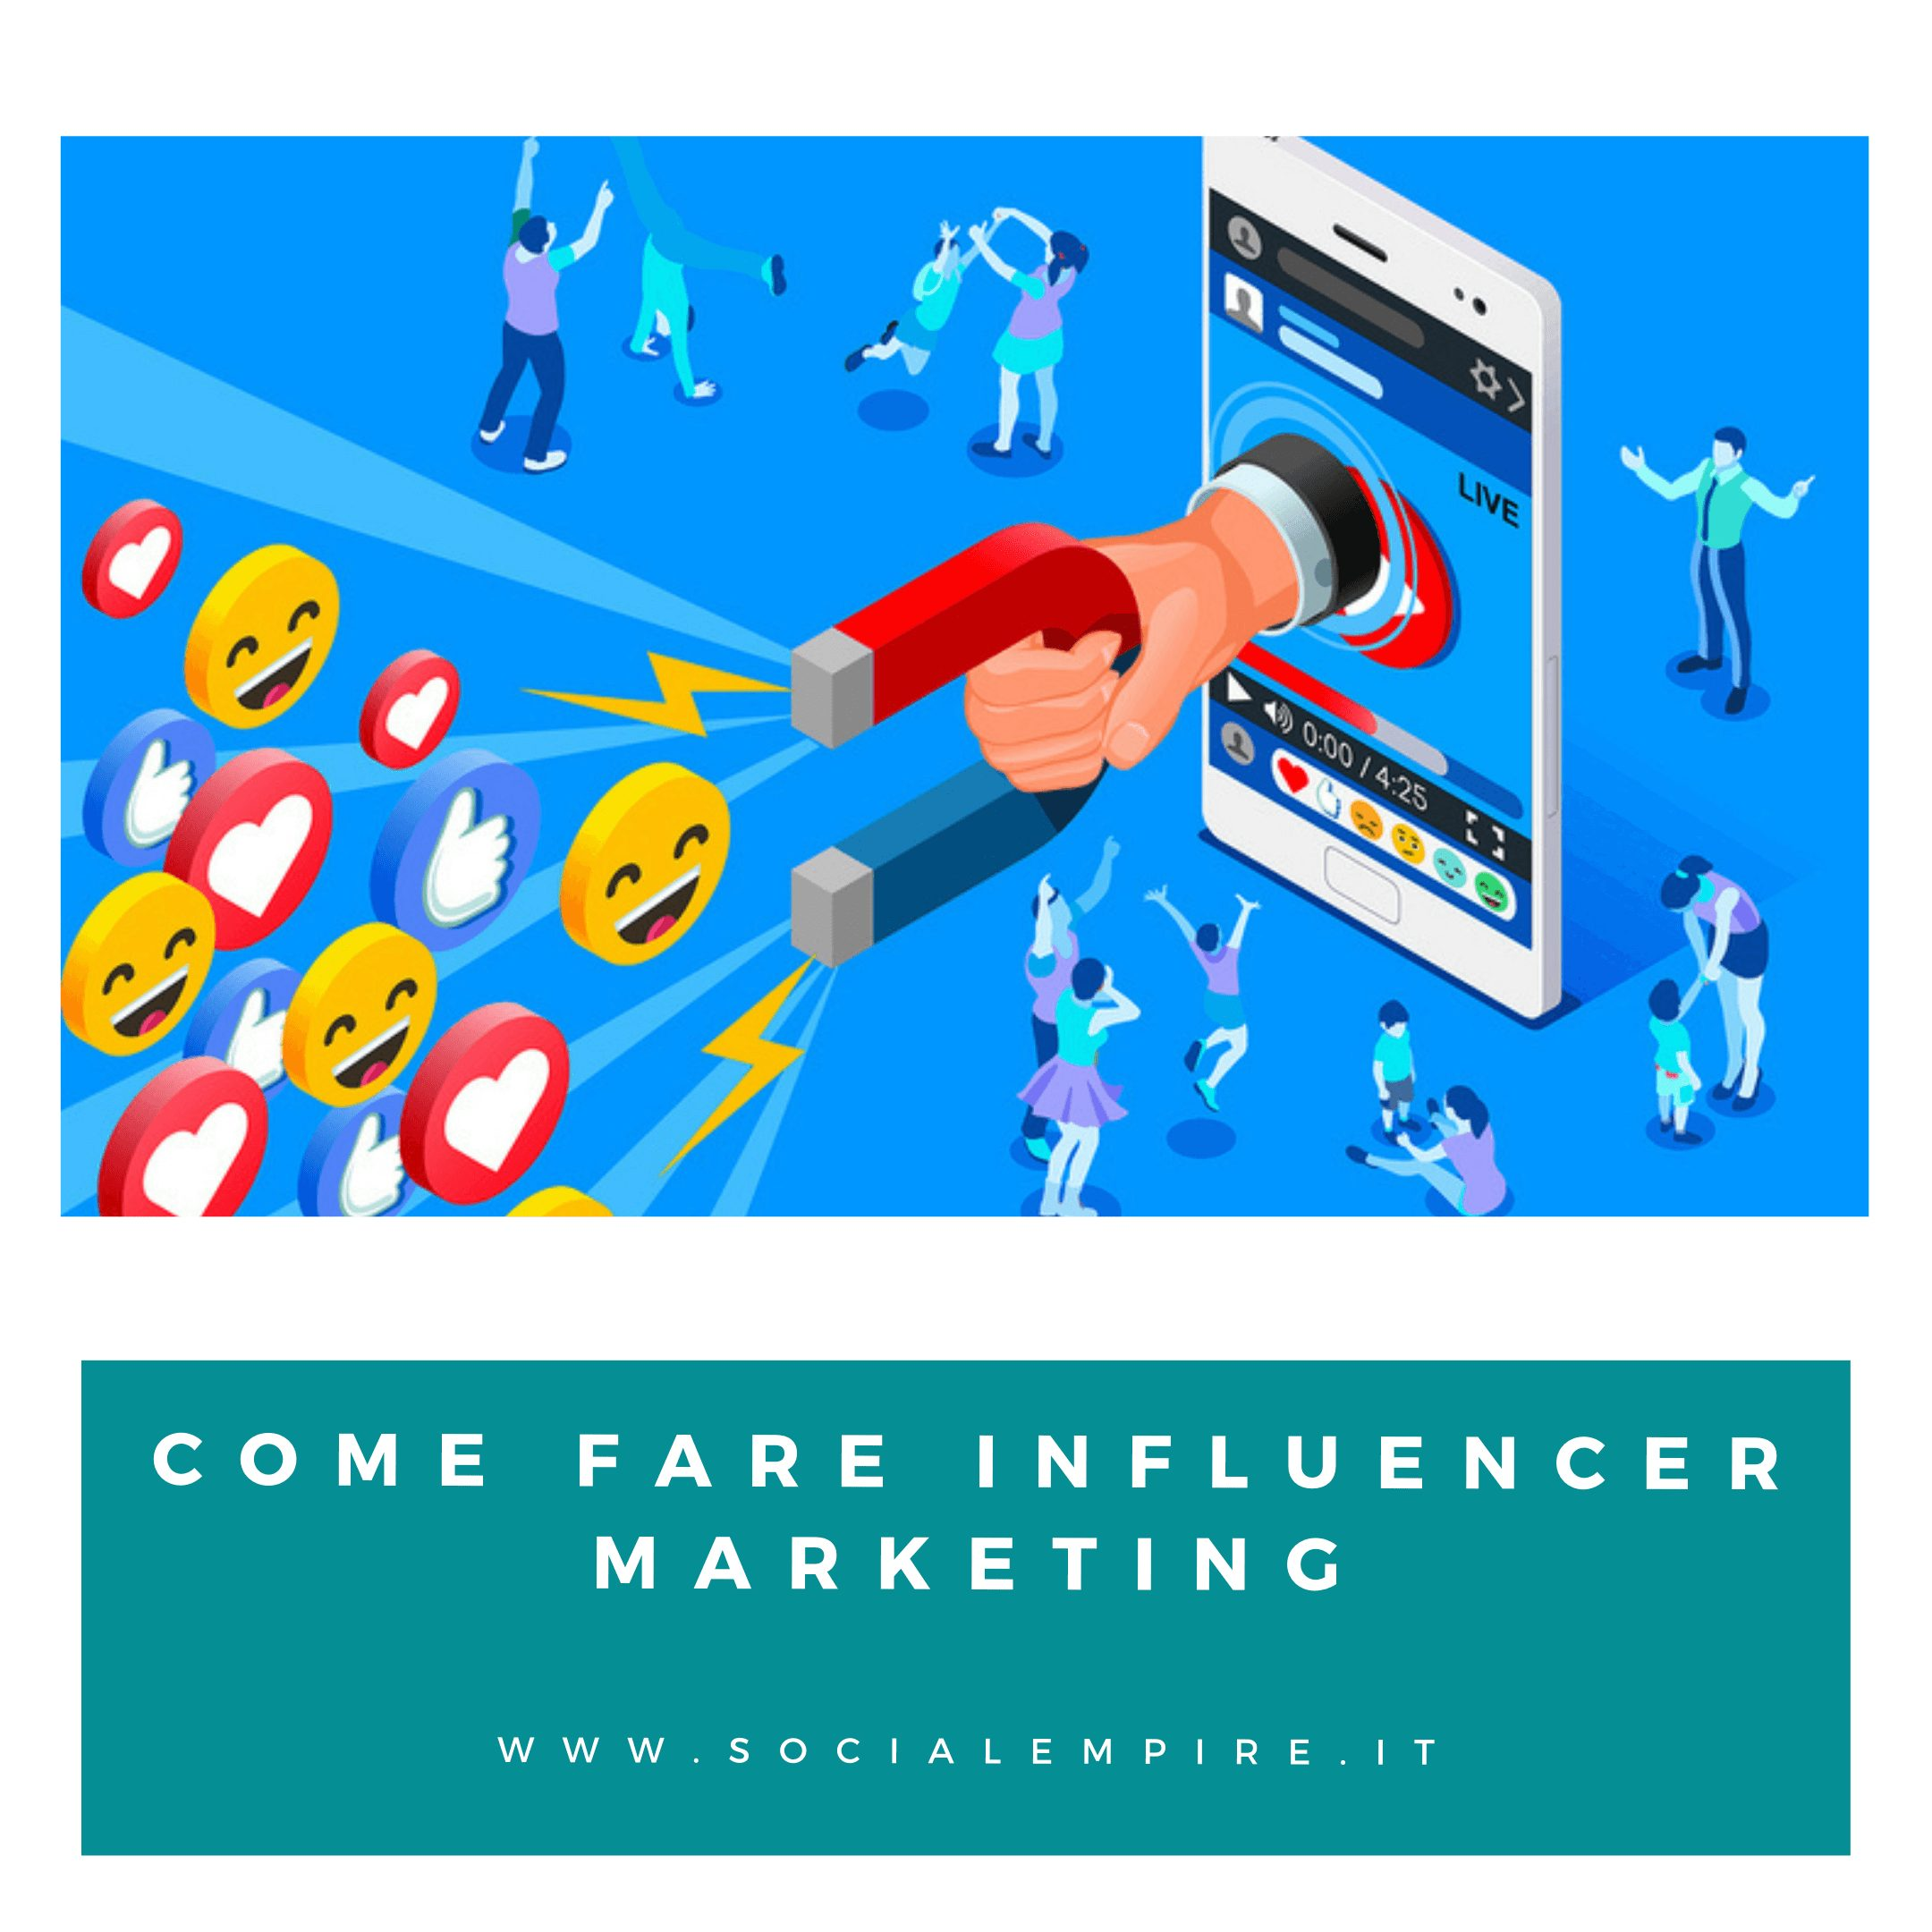 Come fare influencer marketing